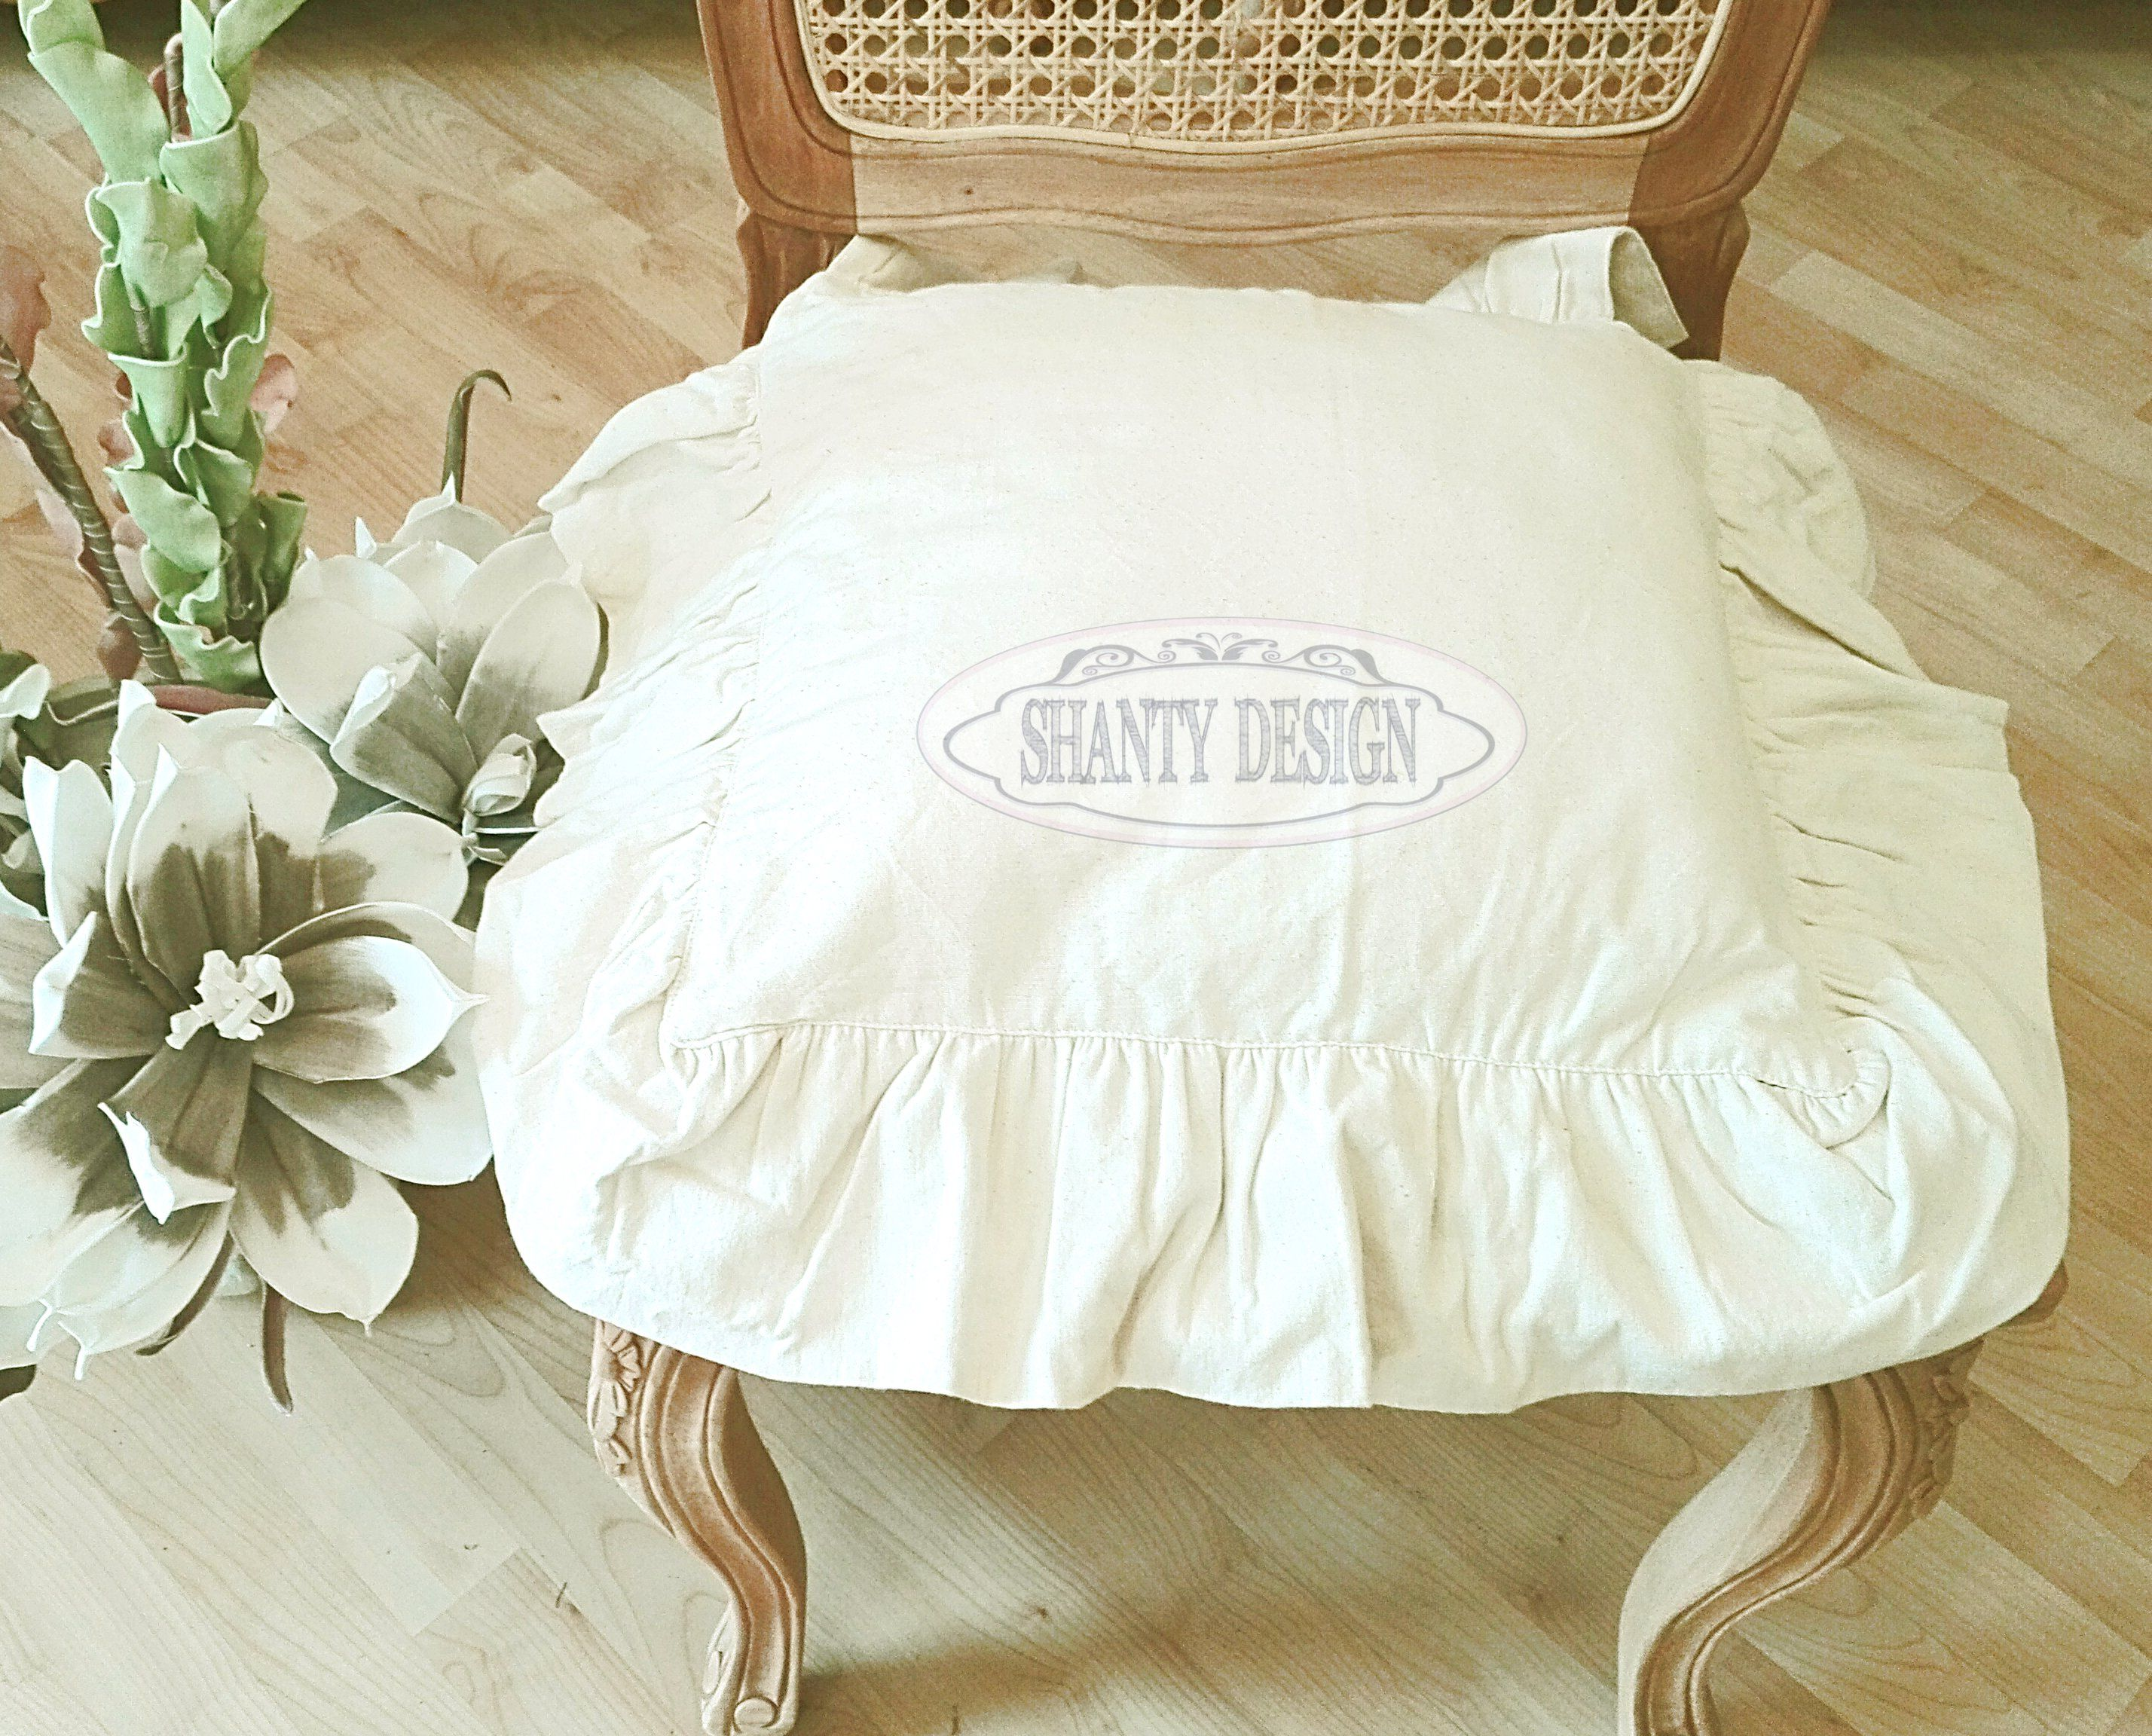 Tovaglie provenzali runner e cuscini country in stile shabby chic